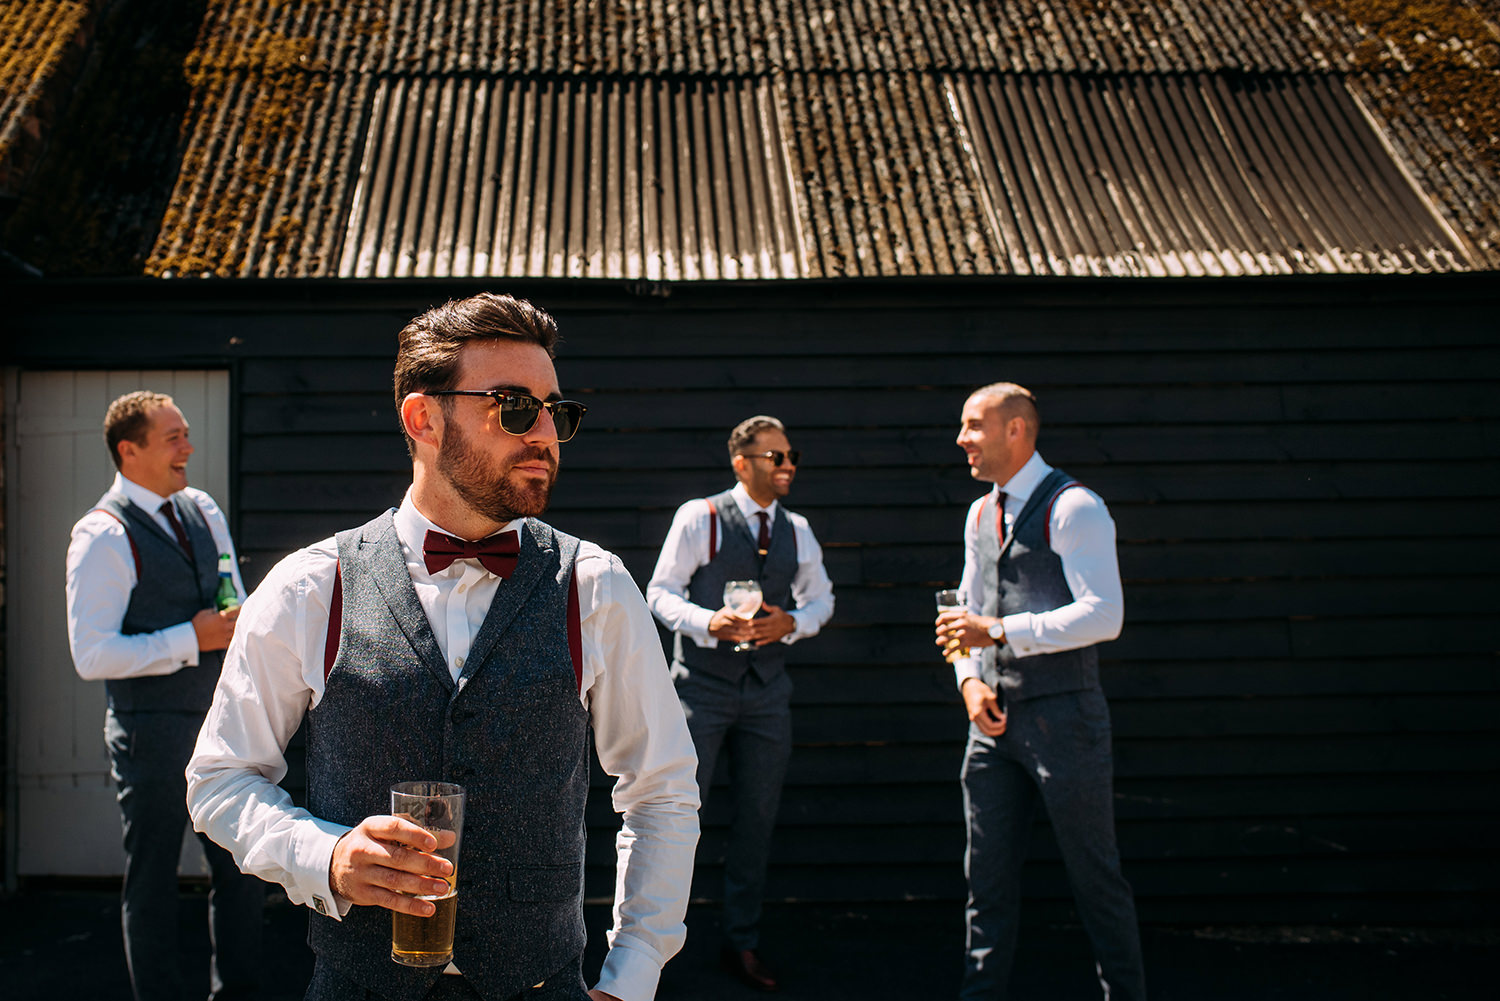 cool shot of the groom and his men by a shed in strong light